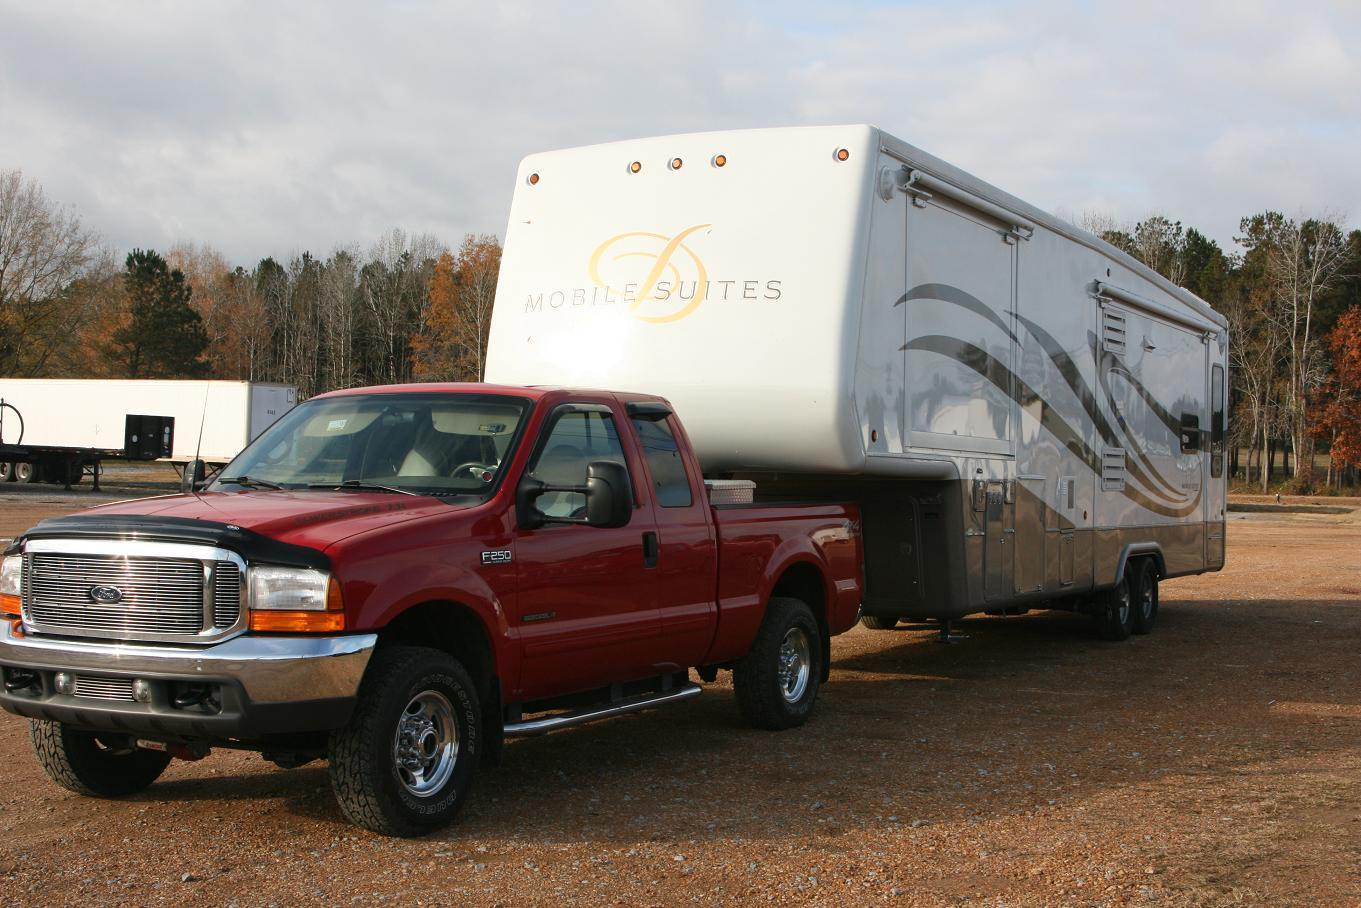 5th Wheel That You Tow With A F250 Diesel Irv2 Forums 2012 Ford Fifth Trailer Plug Click Image For Larger Version Name Thanksgivng 2008 079a Views 2856 Size